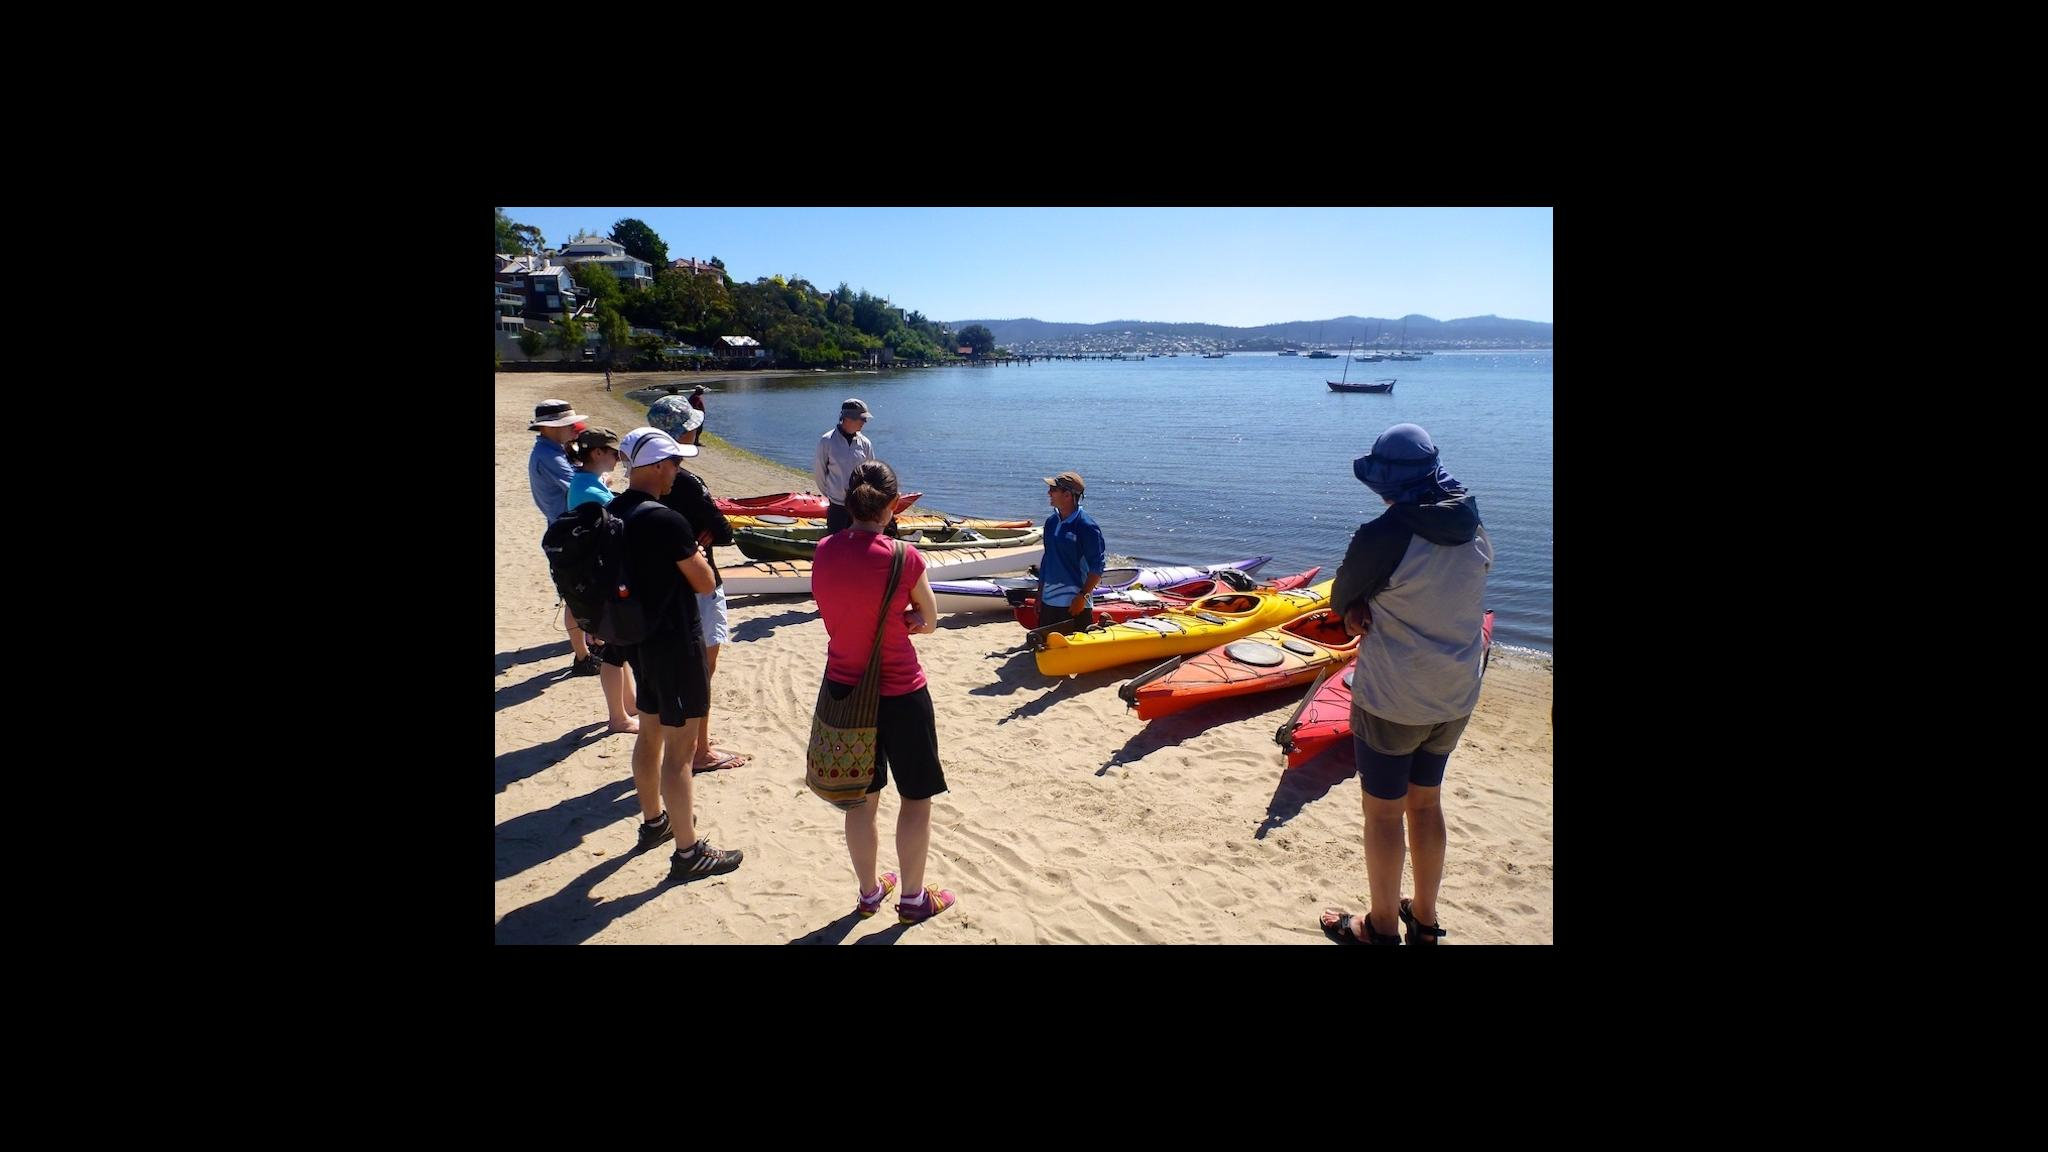 Roaring 40s Kayaking - Learning basics of sea kayaking Hobart Tasmania